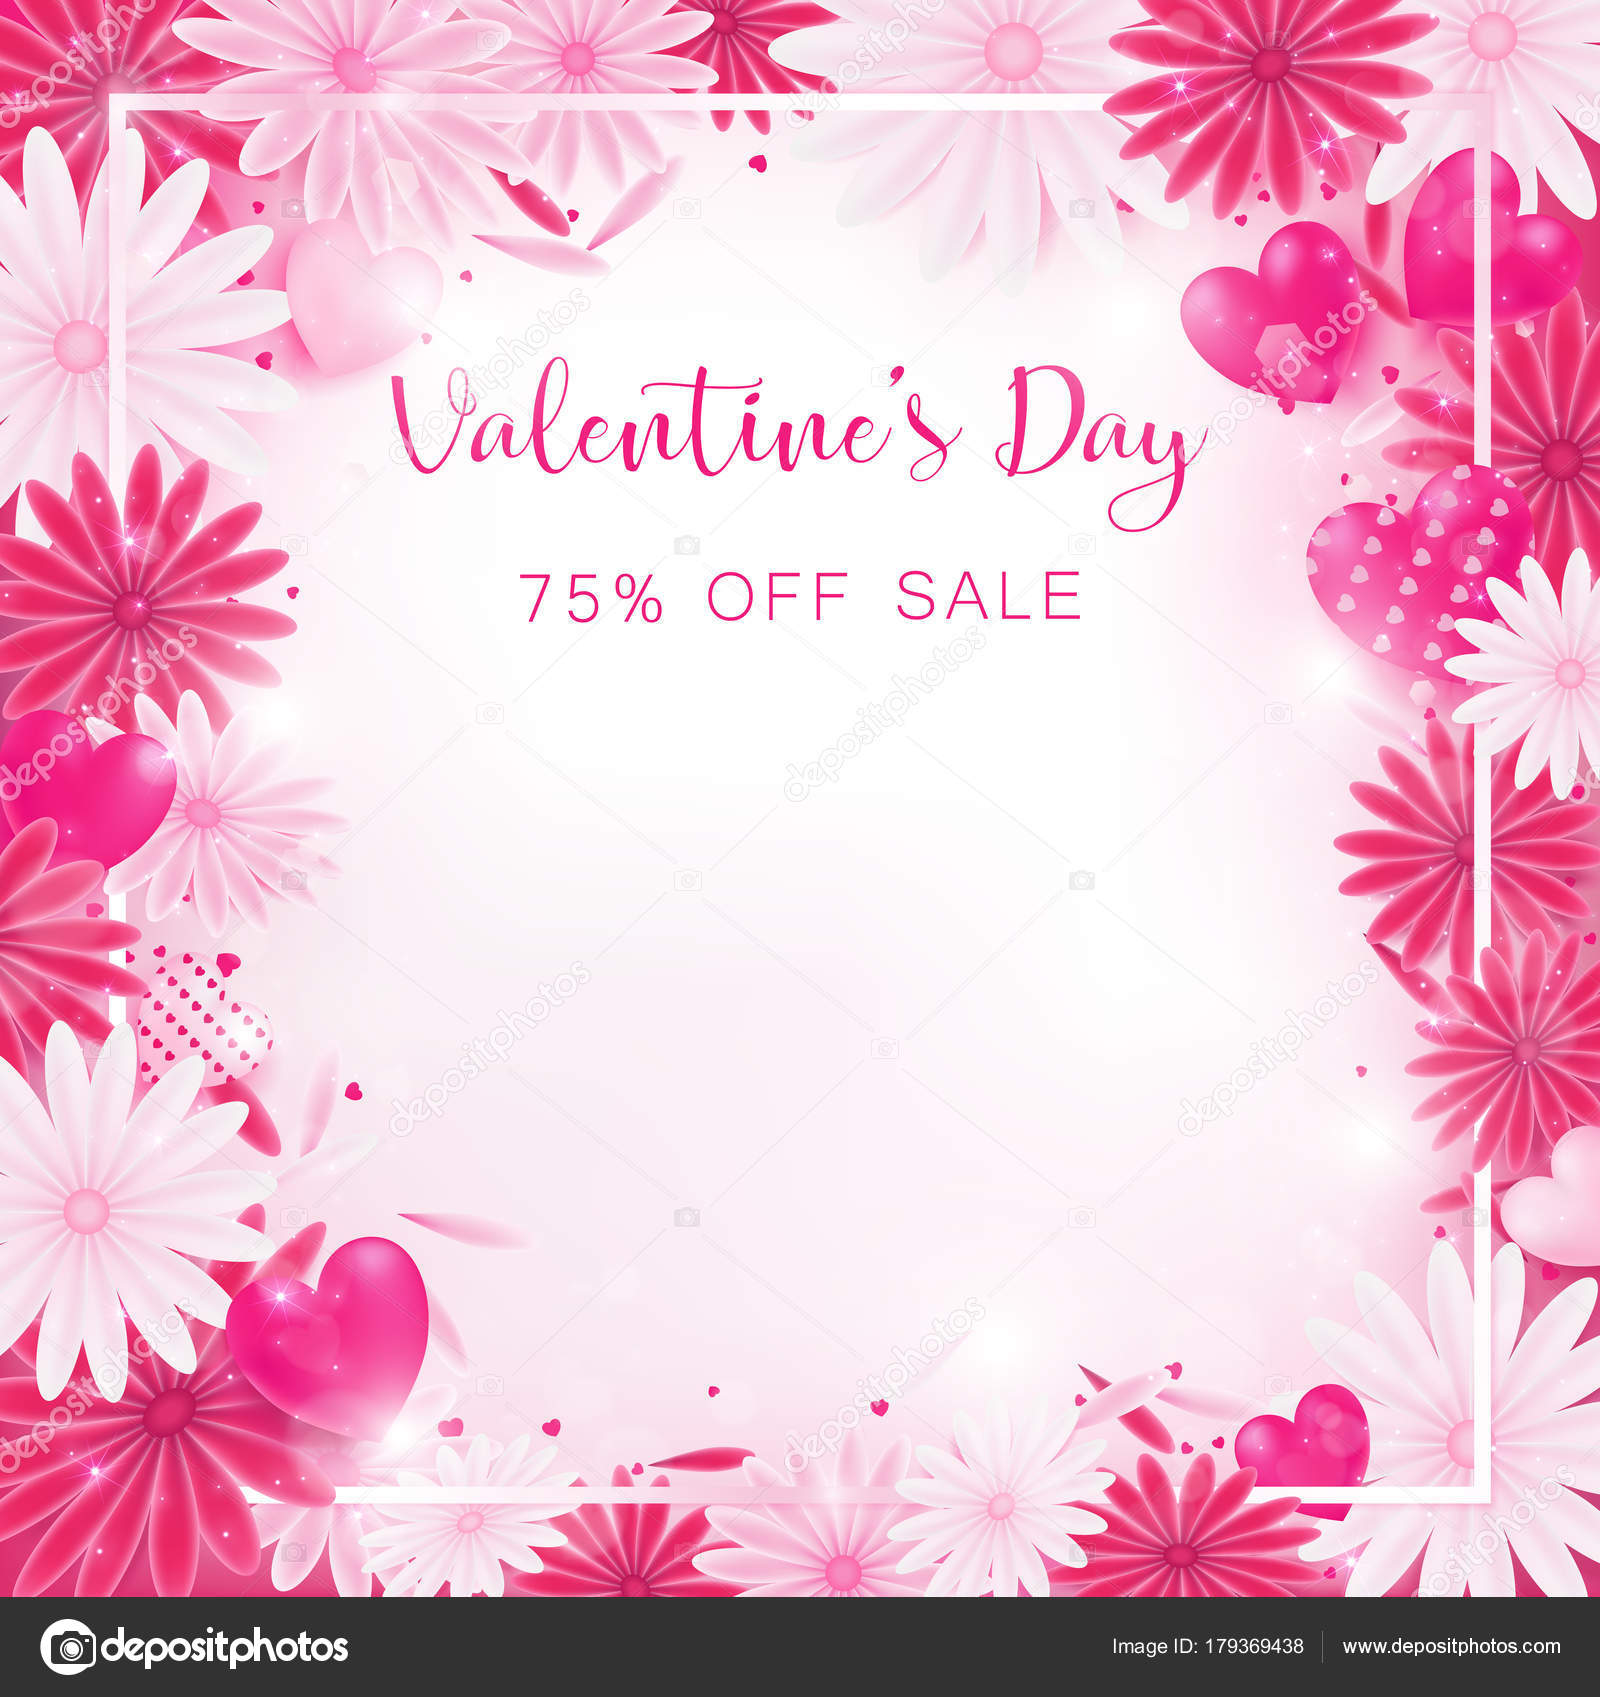 Valentine Floral Invitation Decorate Red Pink Color Flower Blooming